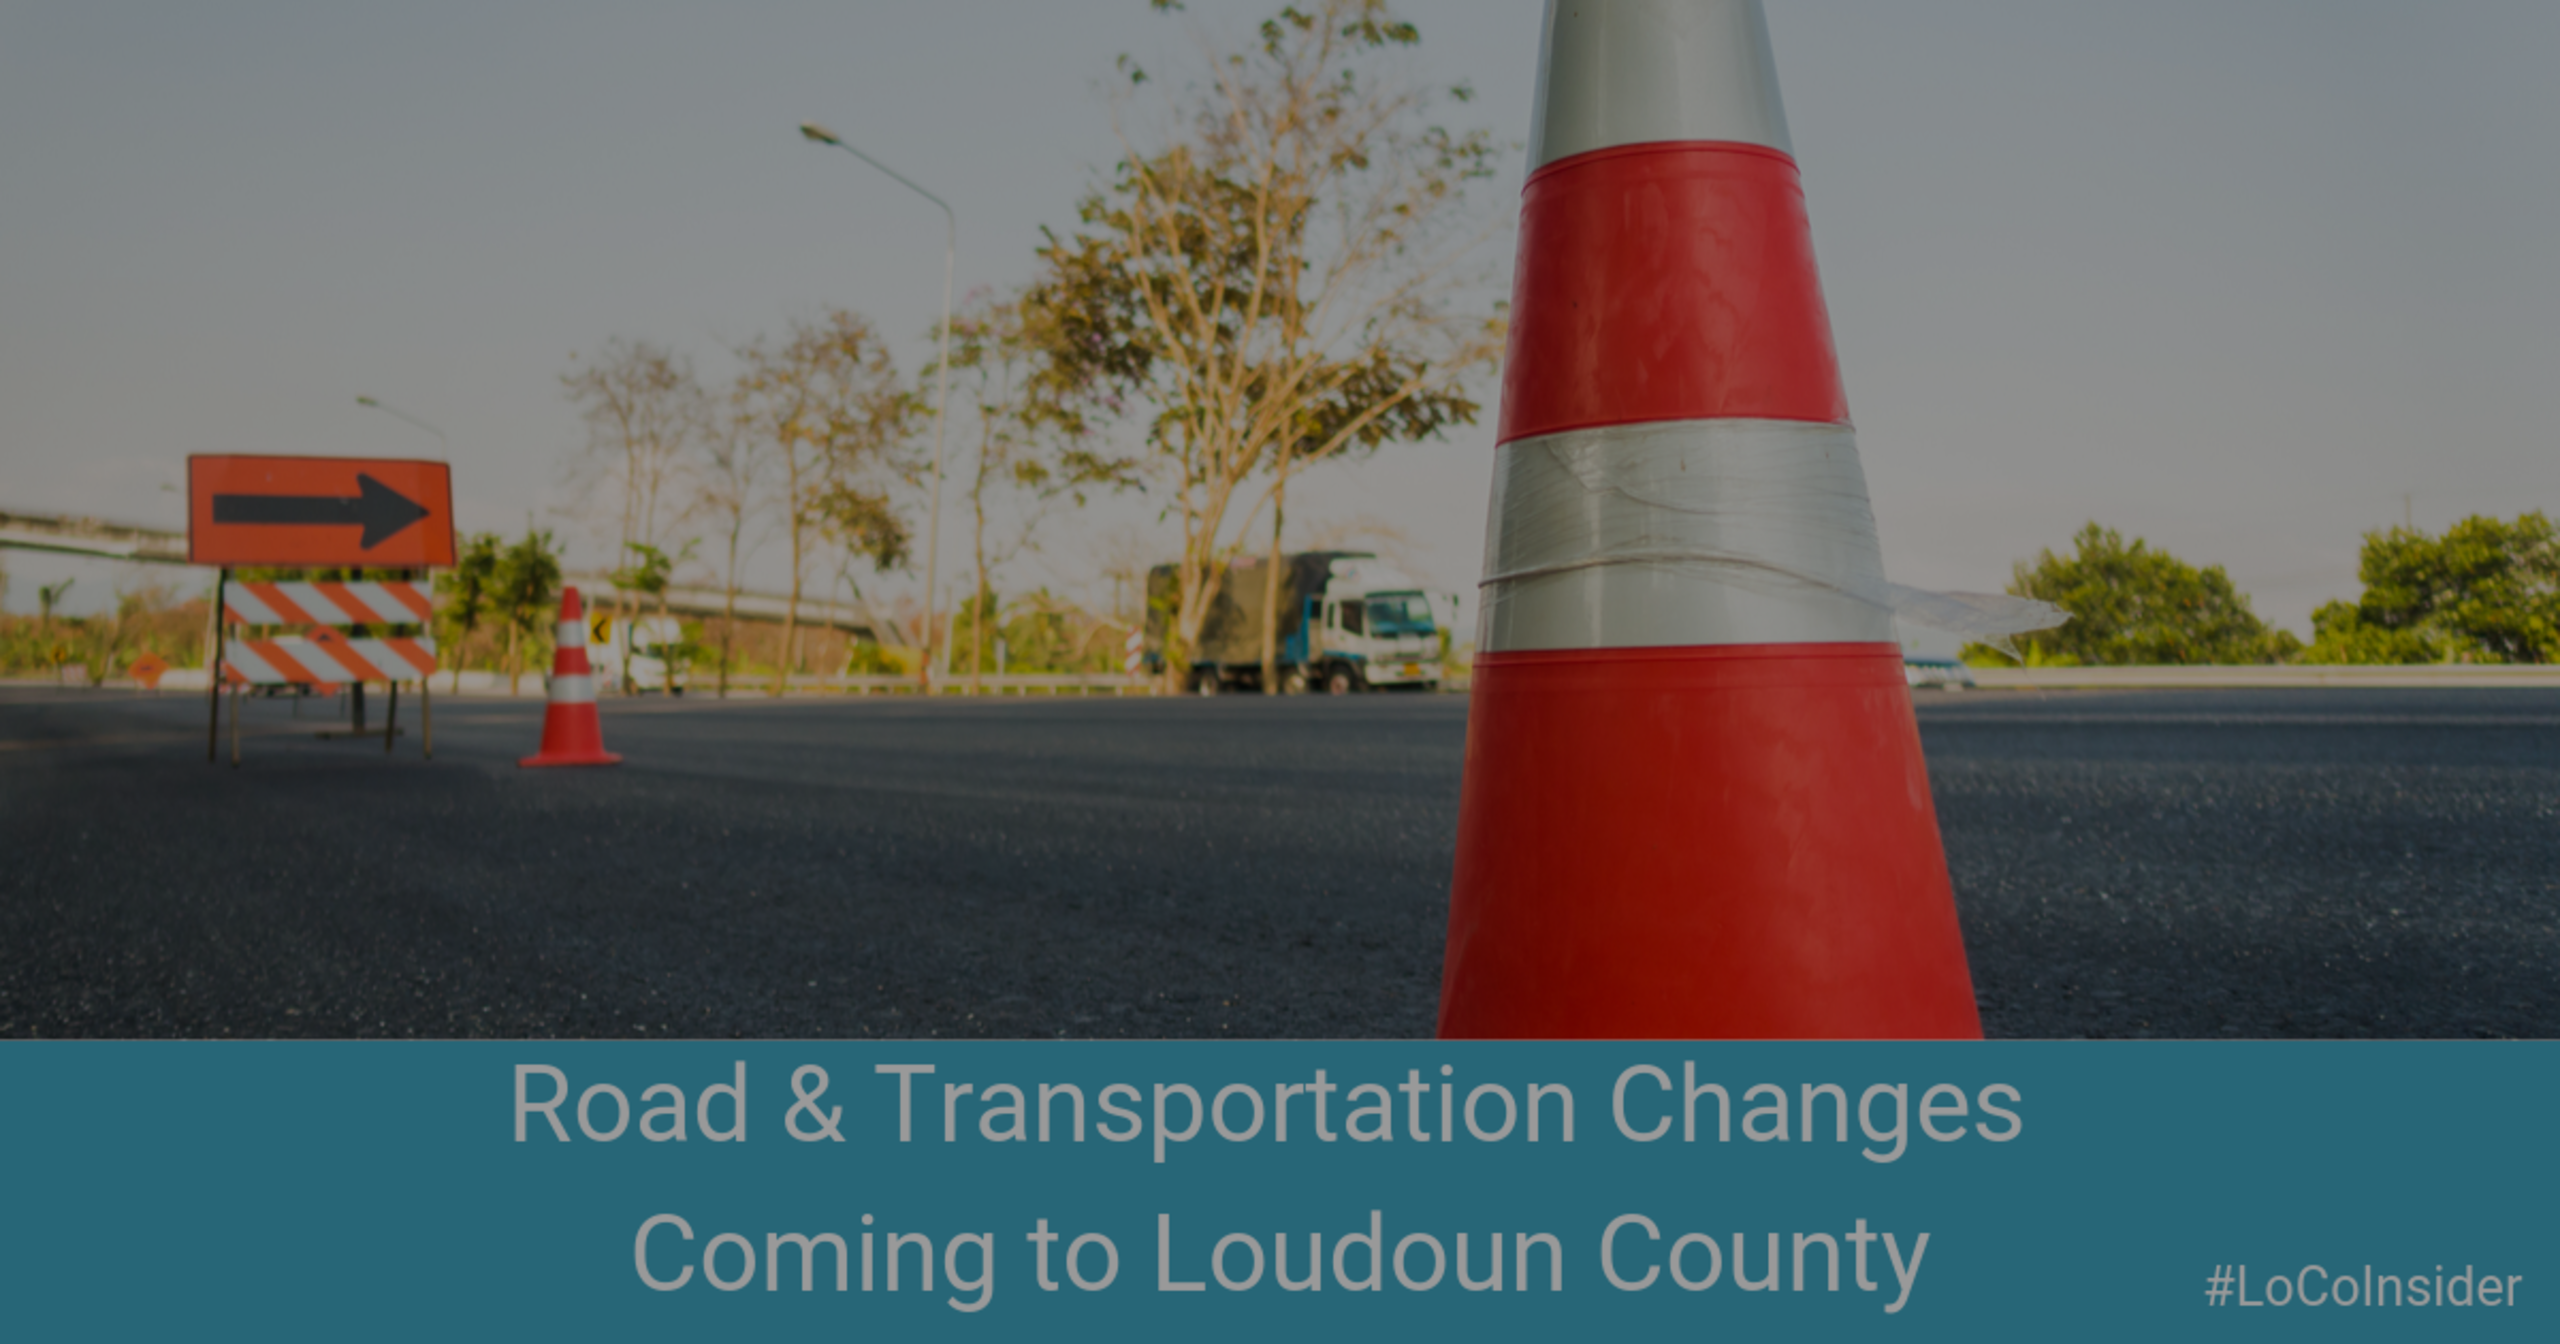 Road & Transportation Changes Coming to Loudoun